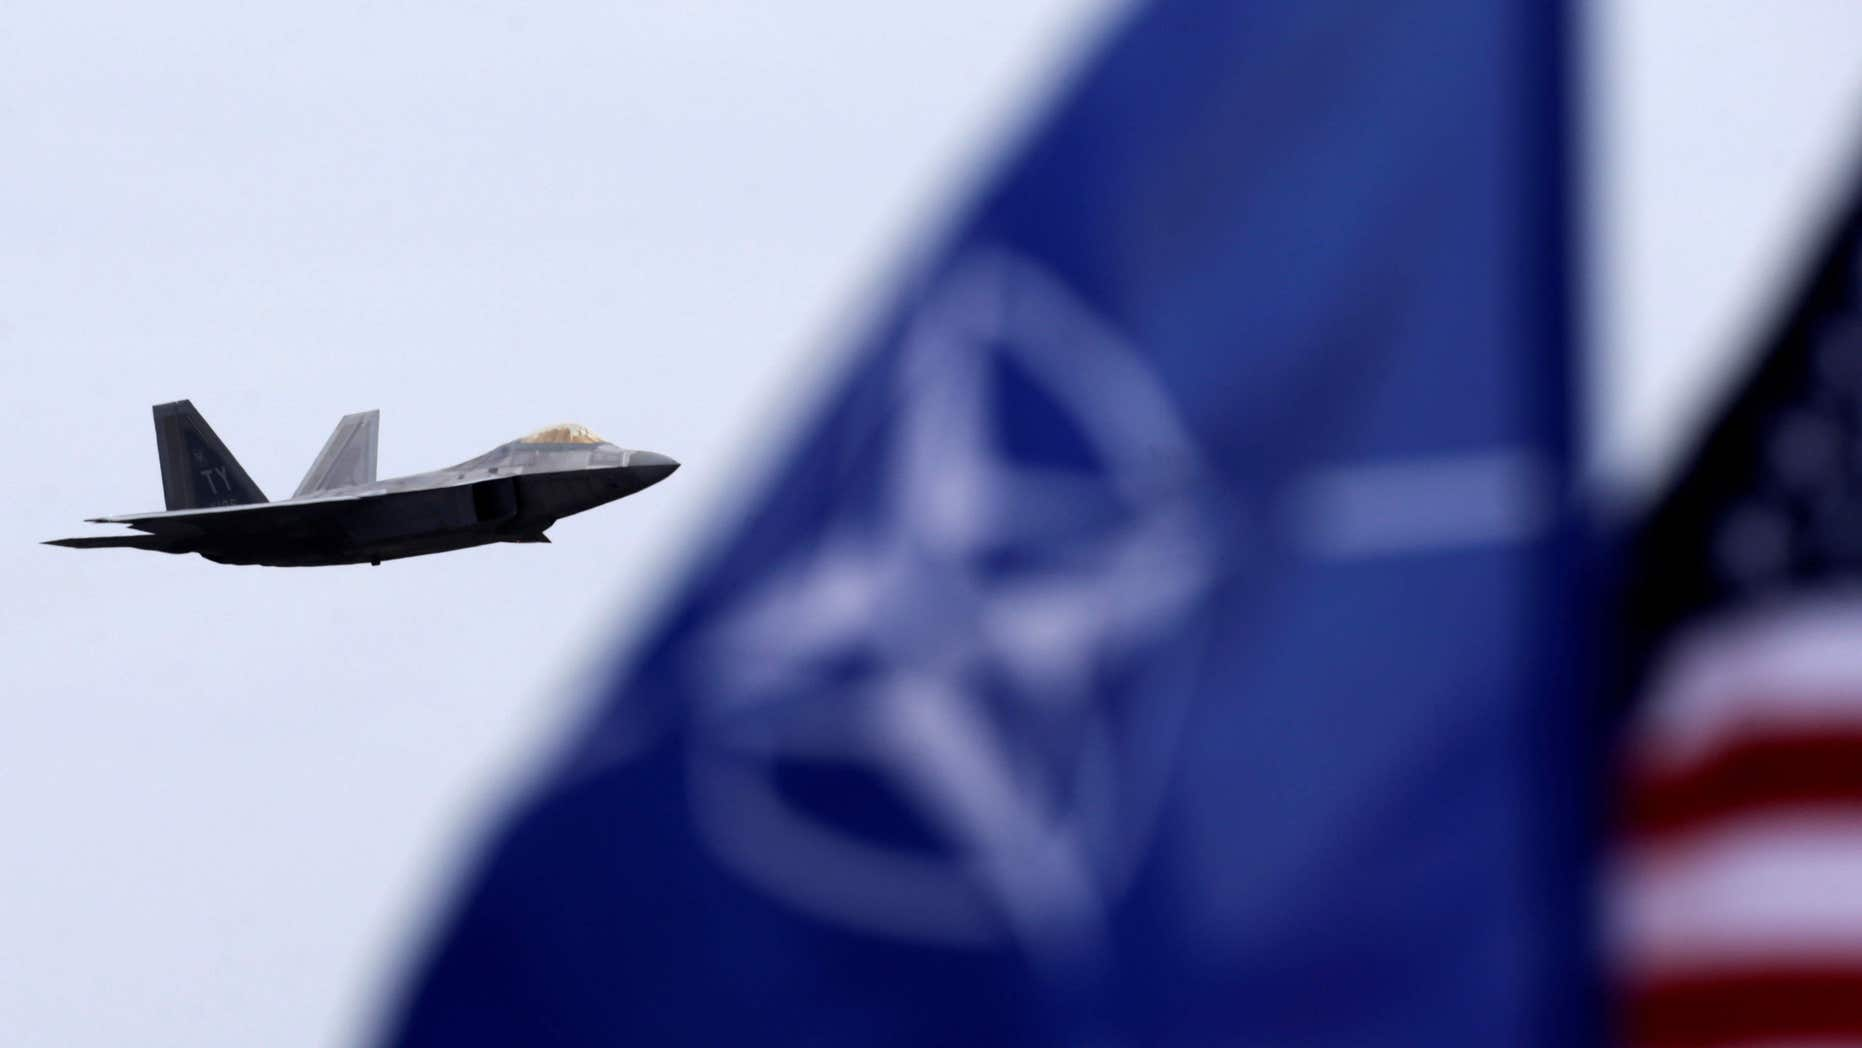 April 27, 2016: NATO and U.S. flags flutter as U.S. Air Force F-22 Raptor fighter flies over the military air base in Siauliai, Lithuania.